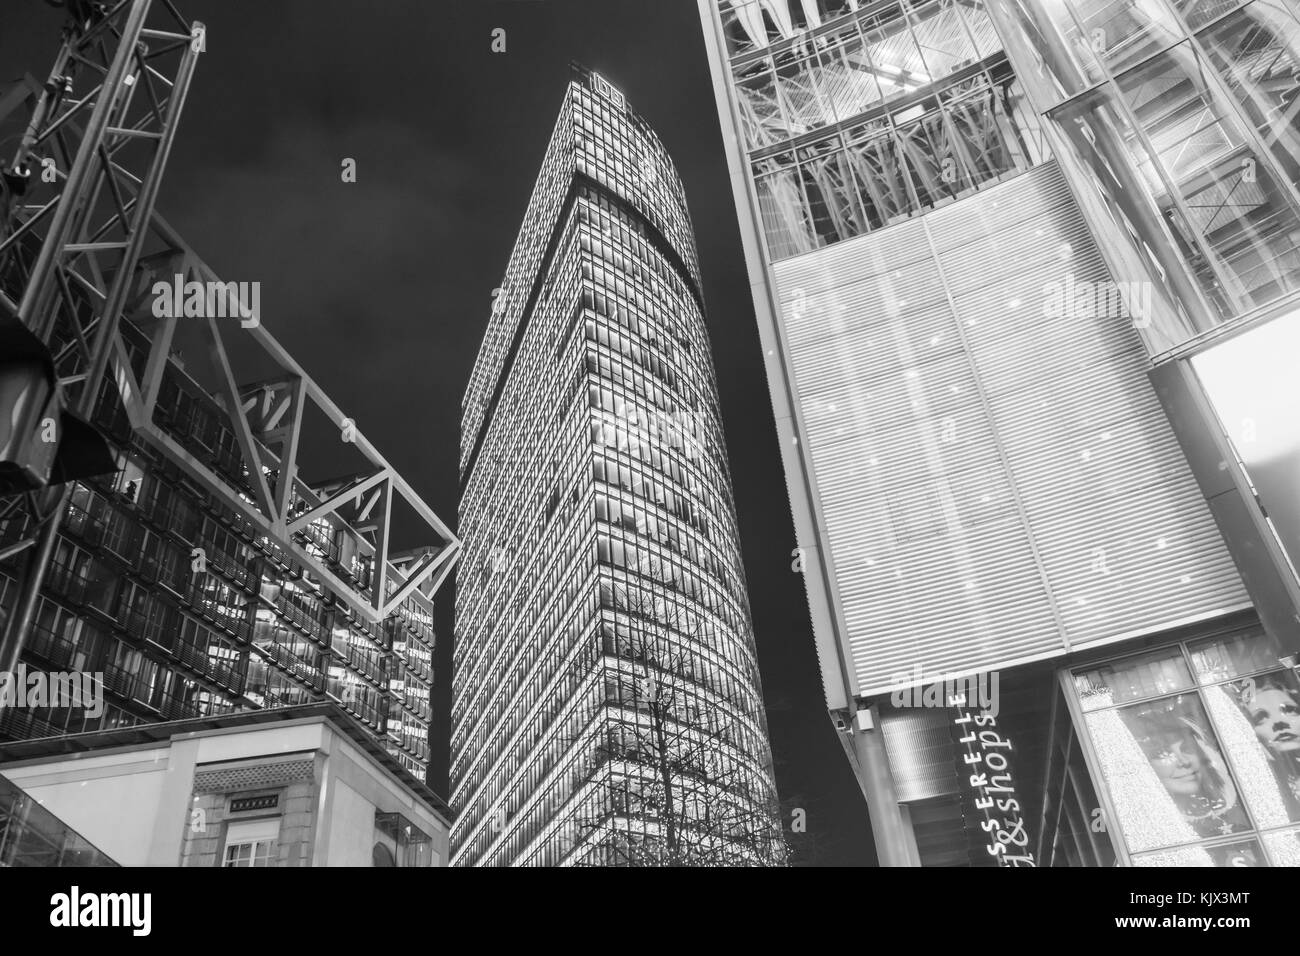 Black and white of the Bahn Tower (Bahntower) at Potsdamer Platz during nighttime in Berlin as seen from the Sony - Stock Image